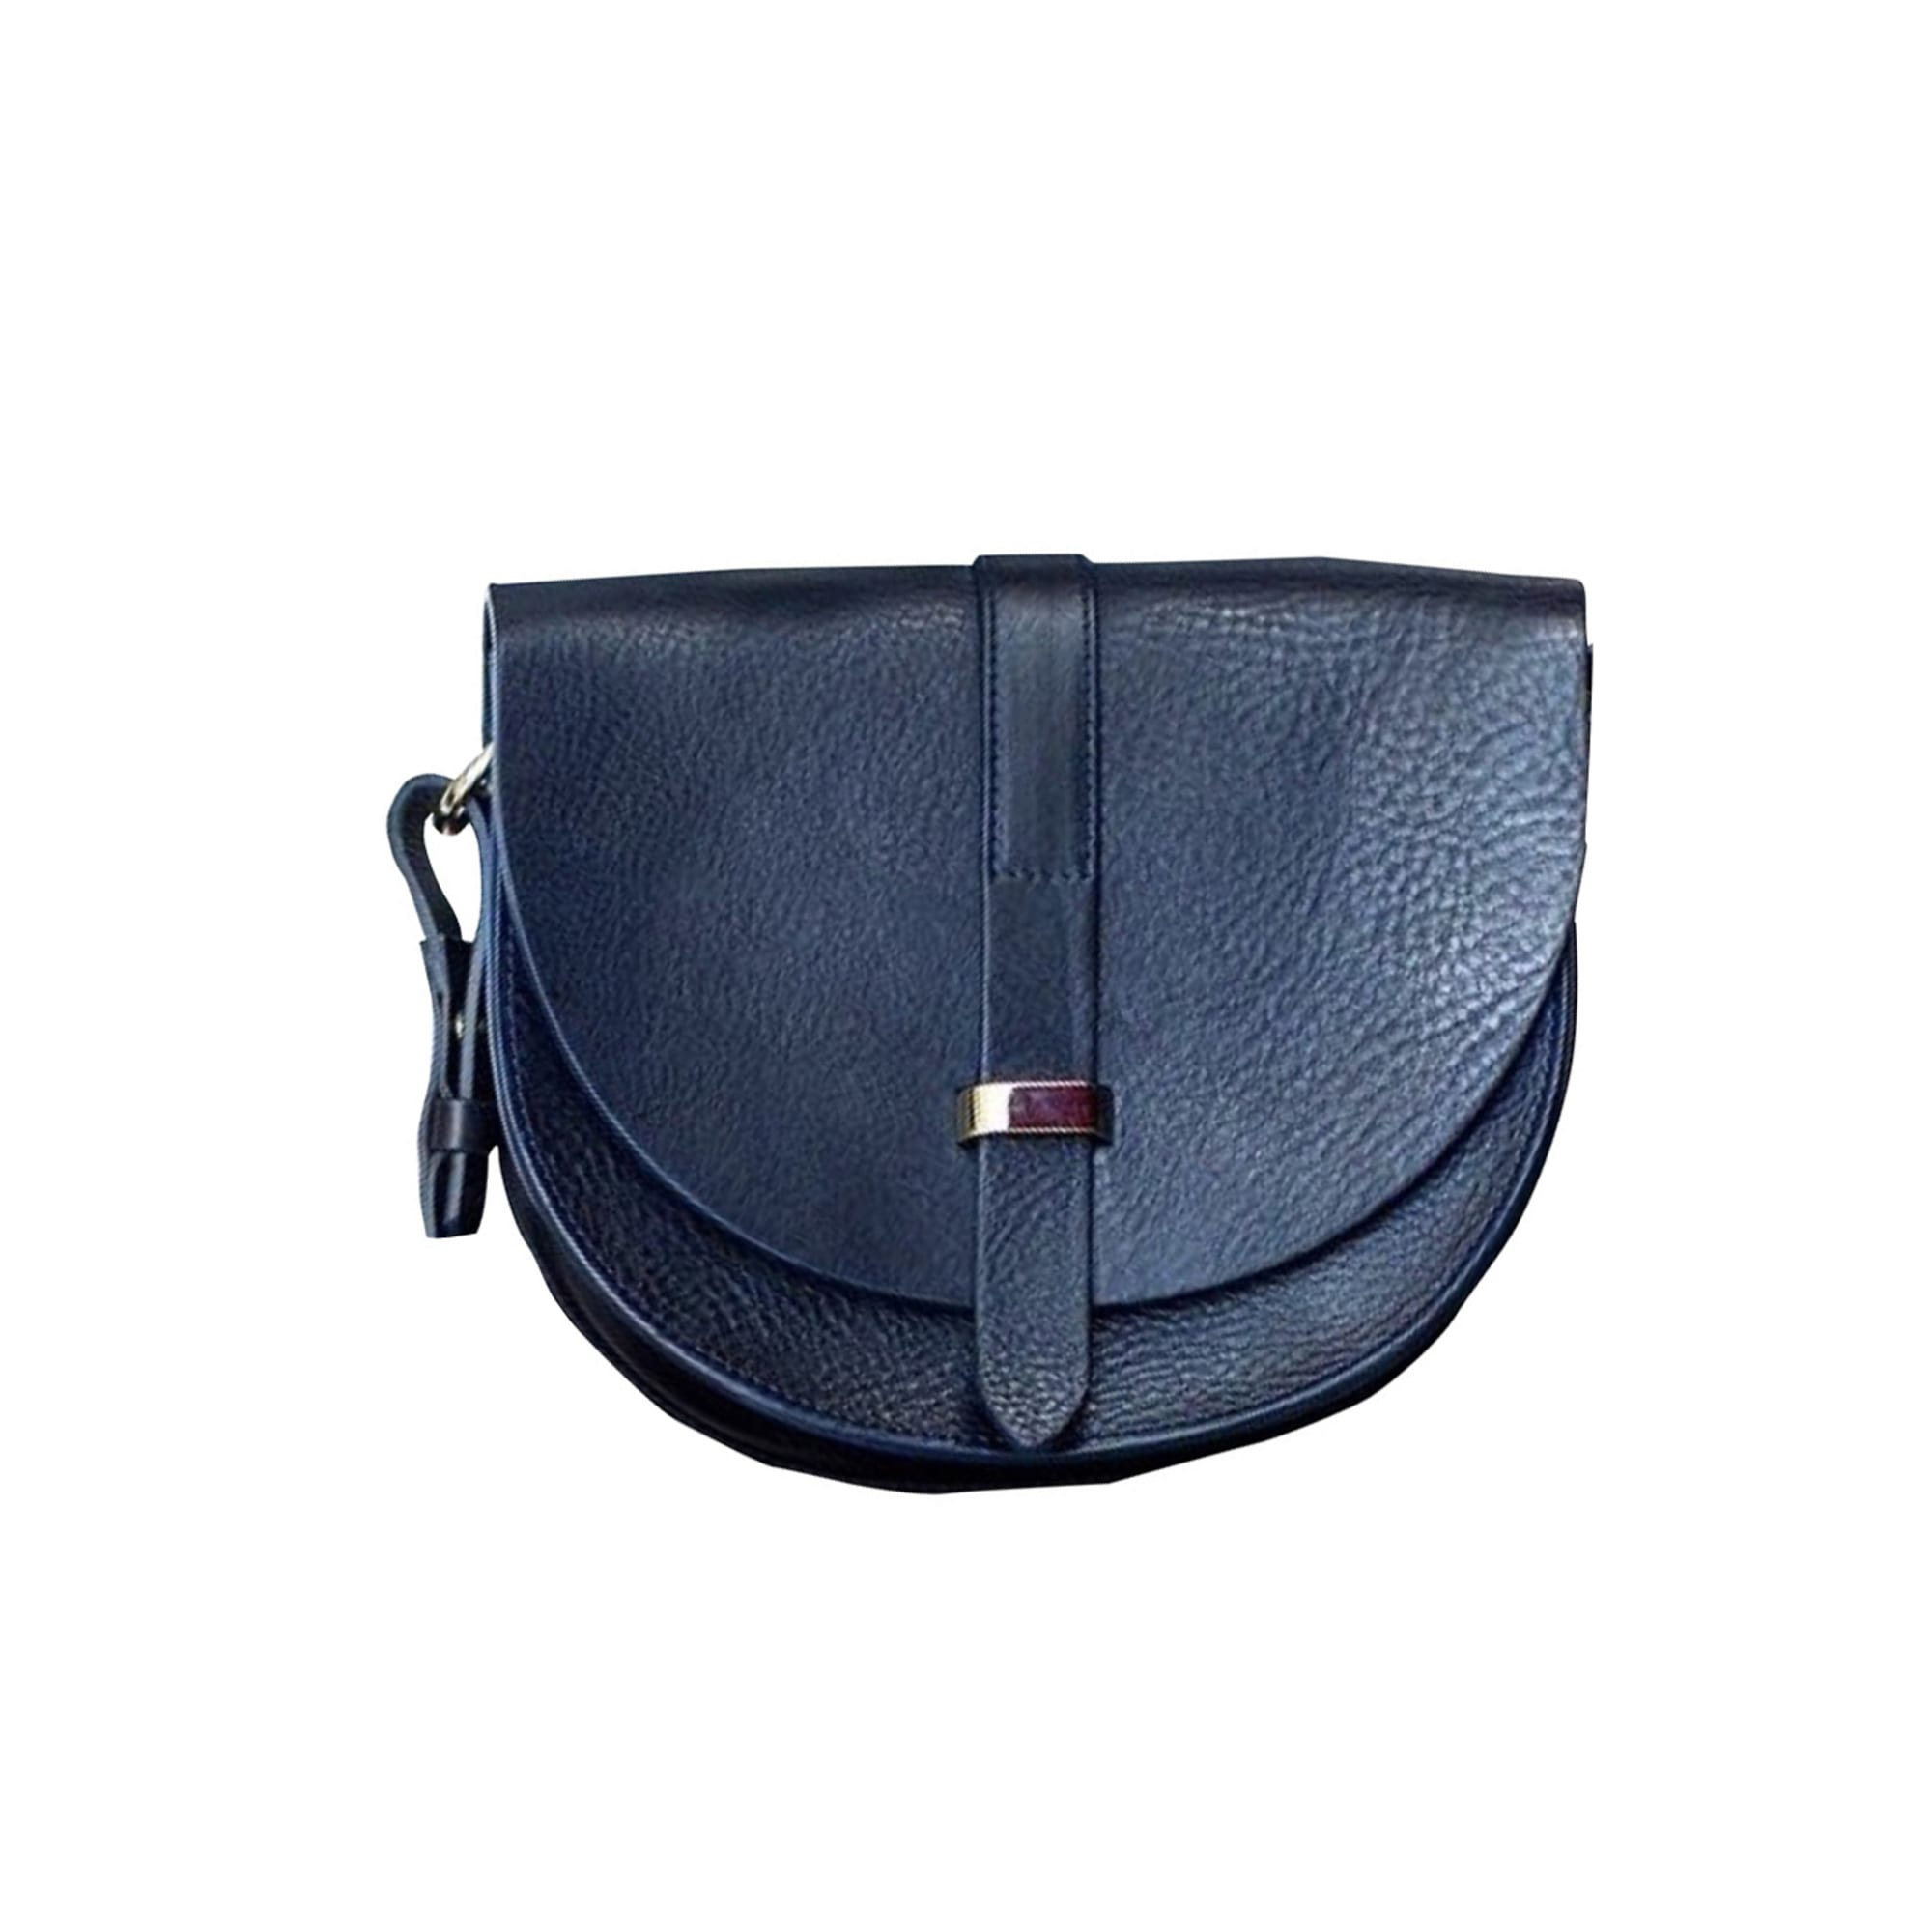 Leather Shoulder Bag SÉZANE Blue, navy, turquoise